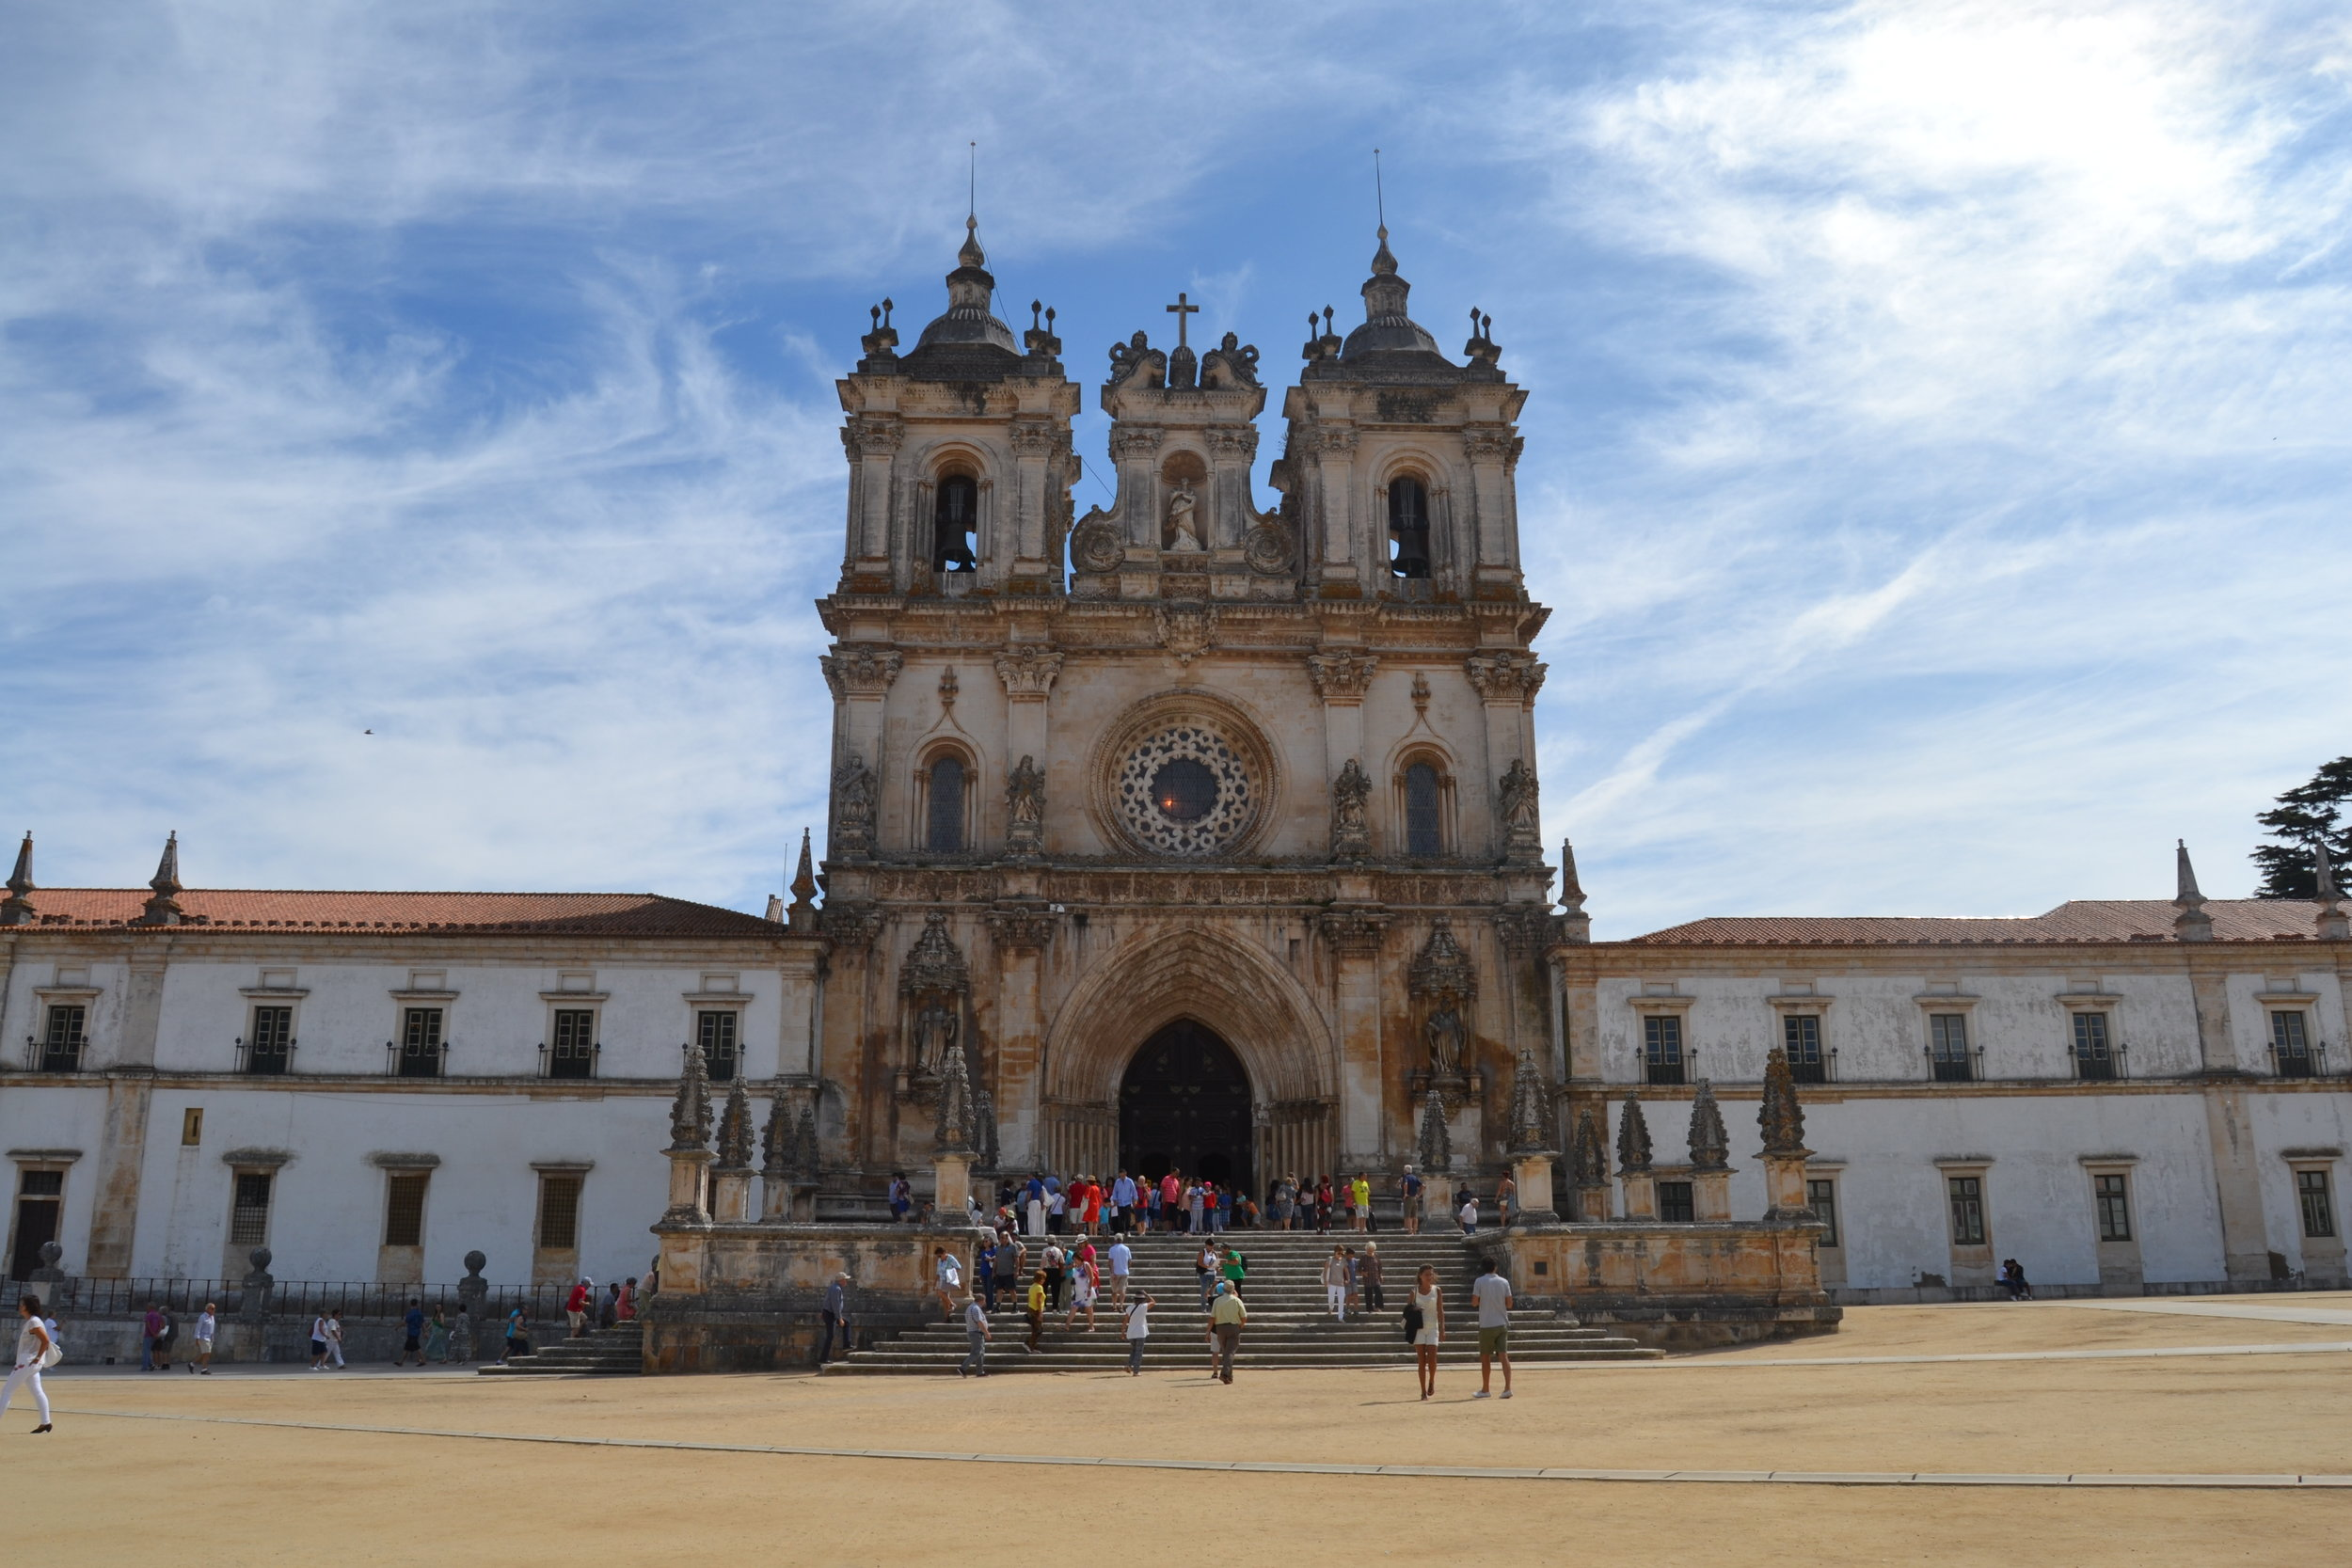 The exterior of Alcobaça Monastery